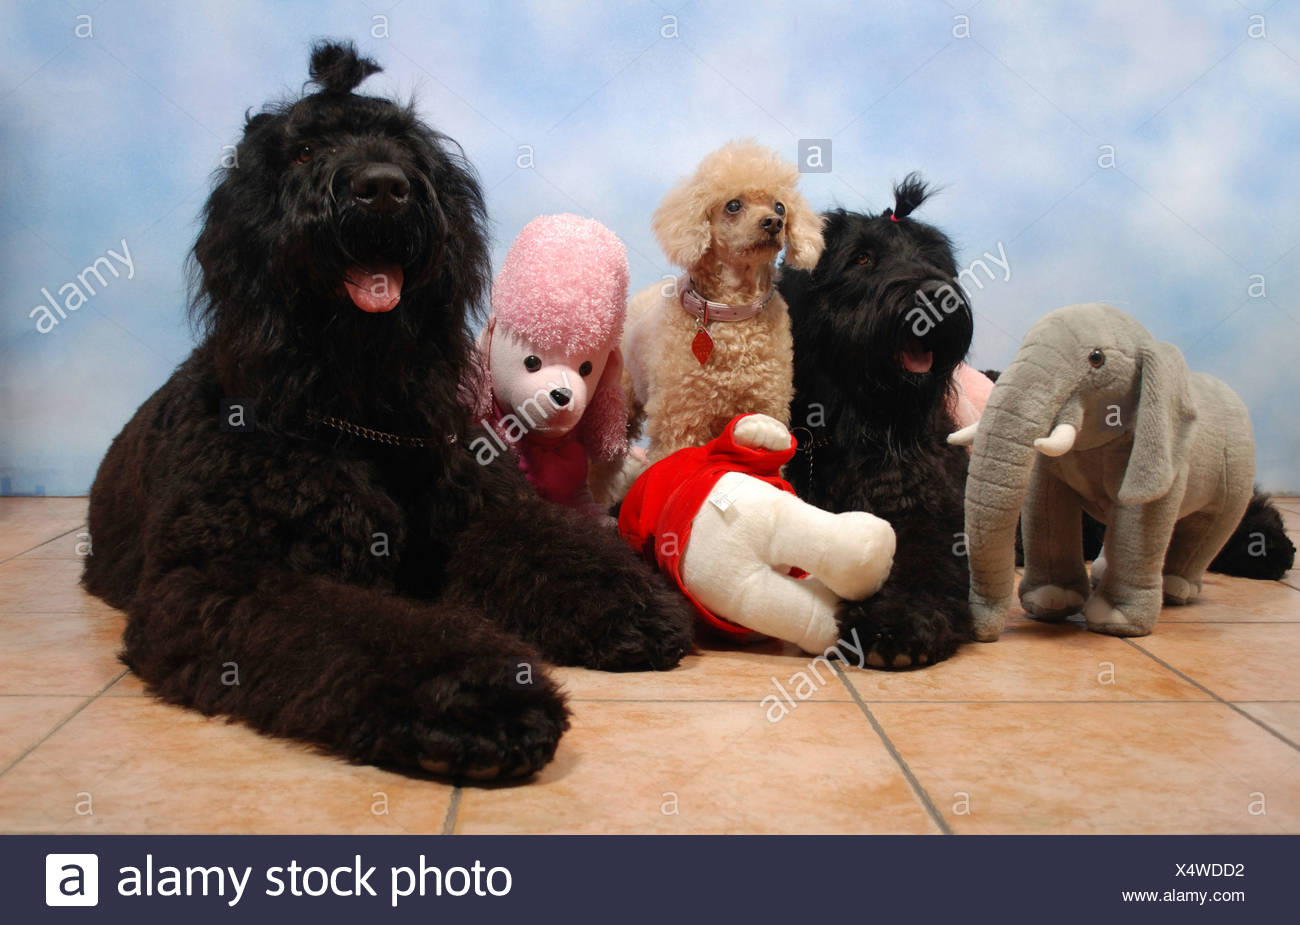 2 Black Russian Terriers and one Apricot Miniature Poodle sitting facing camera with stuffed toys Property release available - Stock Image